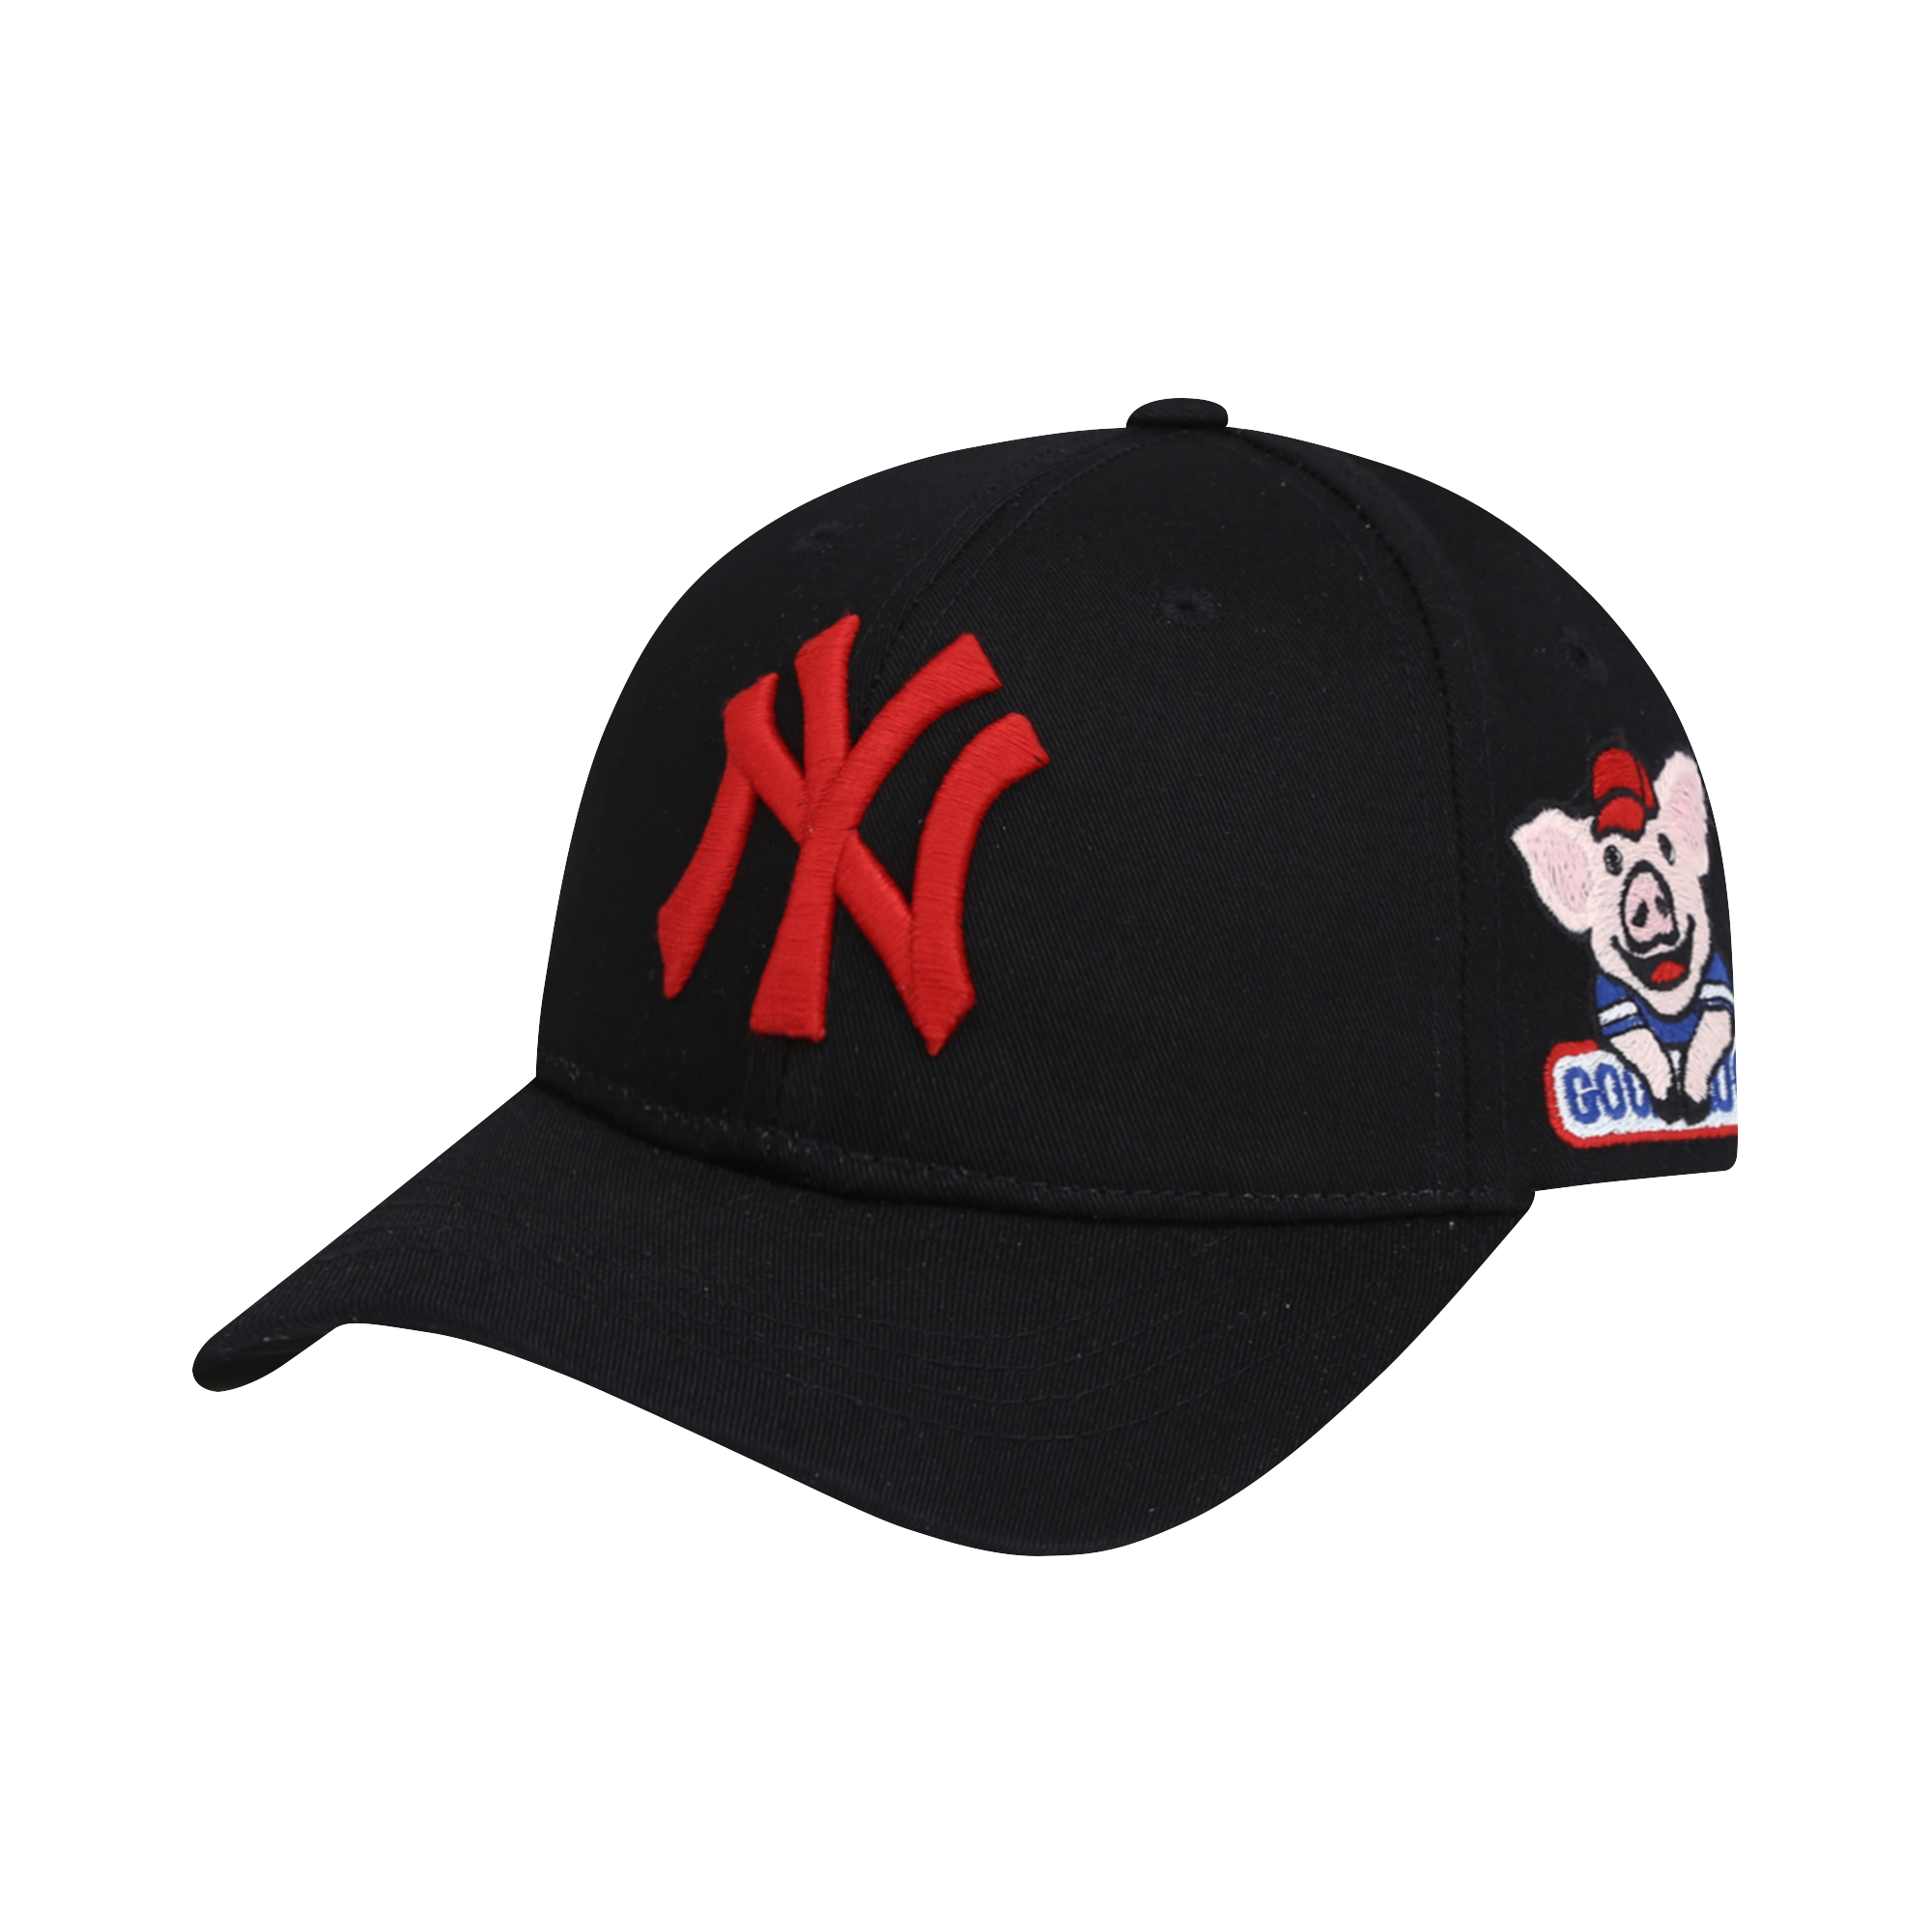 NEW YORK YANKEES HAPPY NEW YEAR LUCKY PIG CURVED CAP